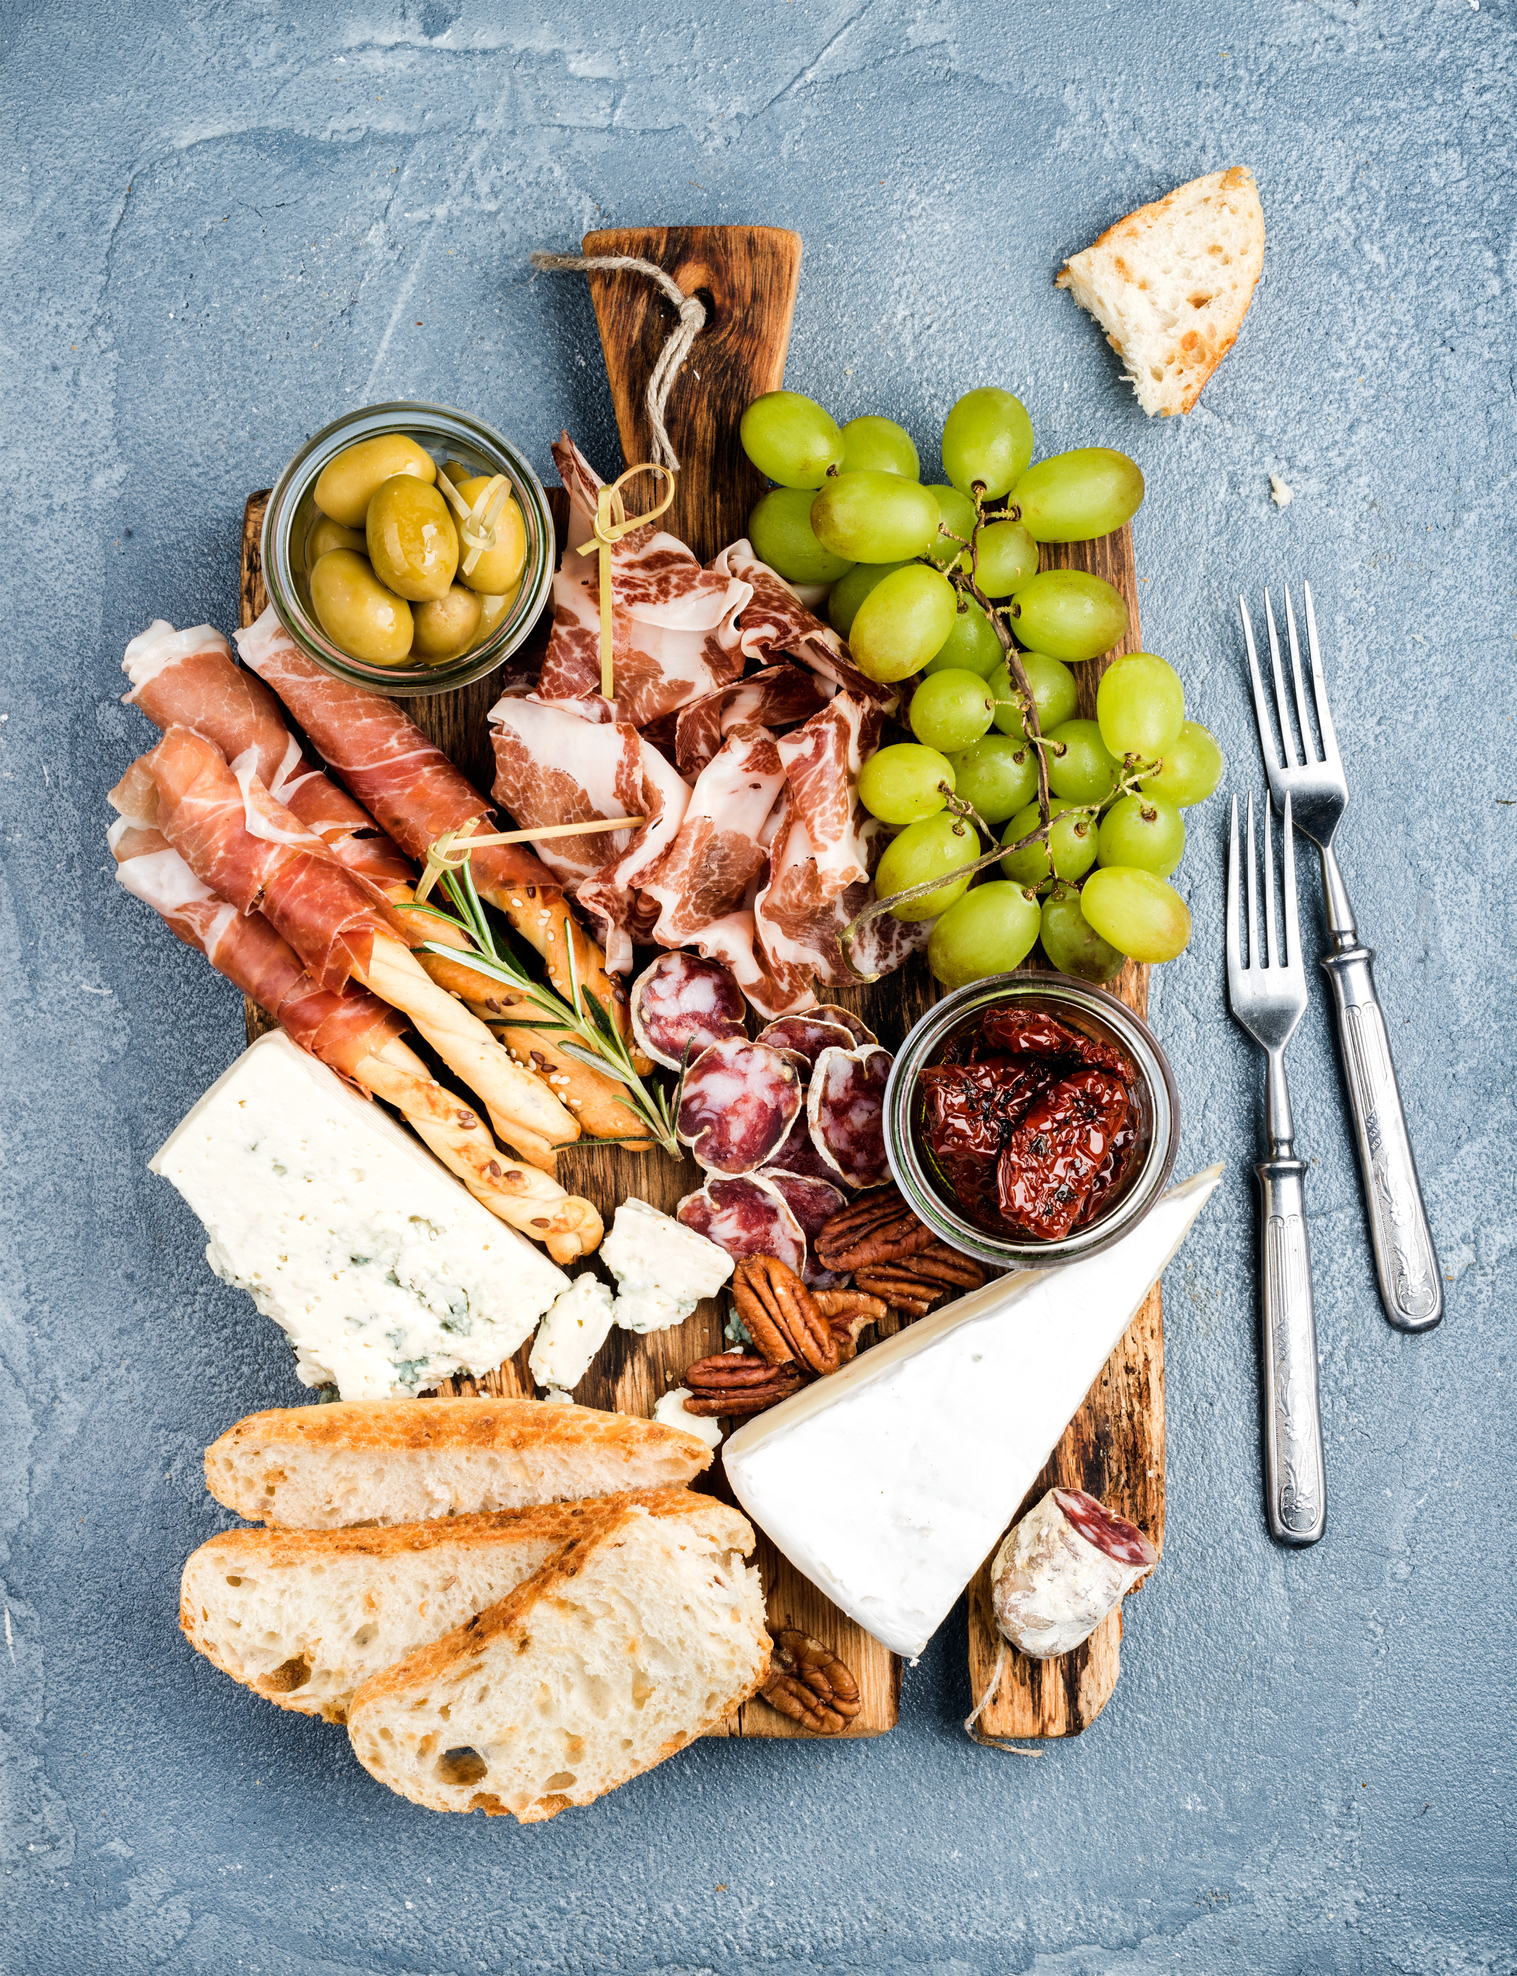 <p>Cheese and meat appetizer selection. Prosciutto di Parma, salami, bread sticks, baguette slices, olives, sun-dried tomatoes, grapes and nutson rustic wooden board over grey concrete textured backdrop, top view</p>